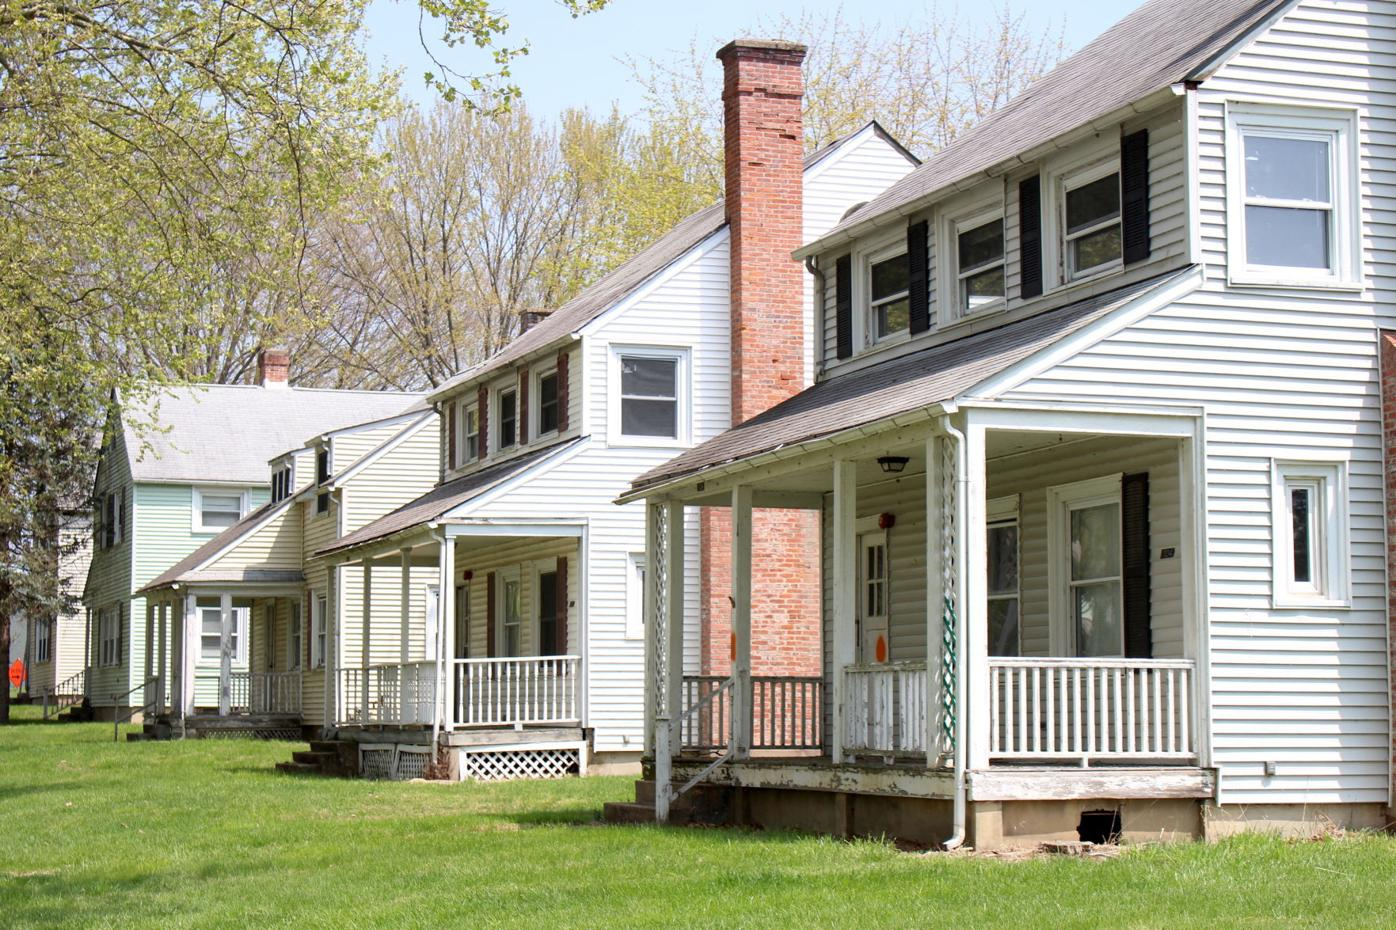 VA Village housing